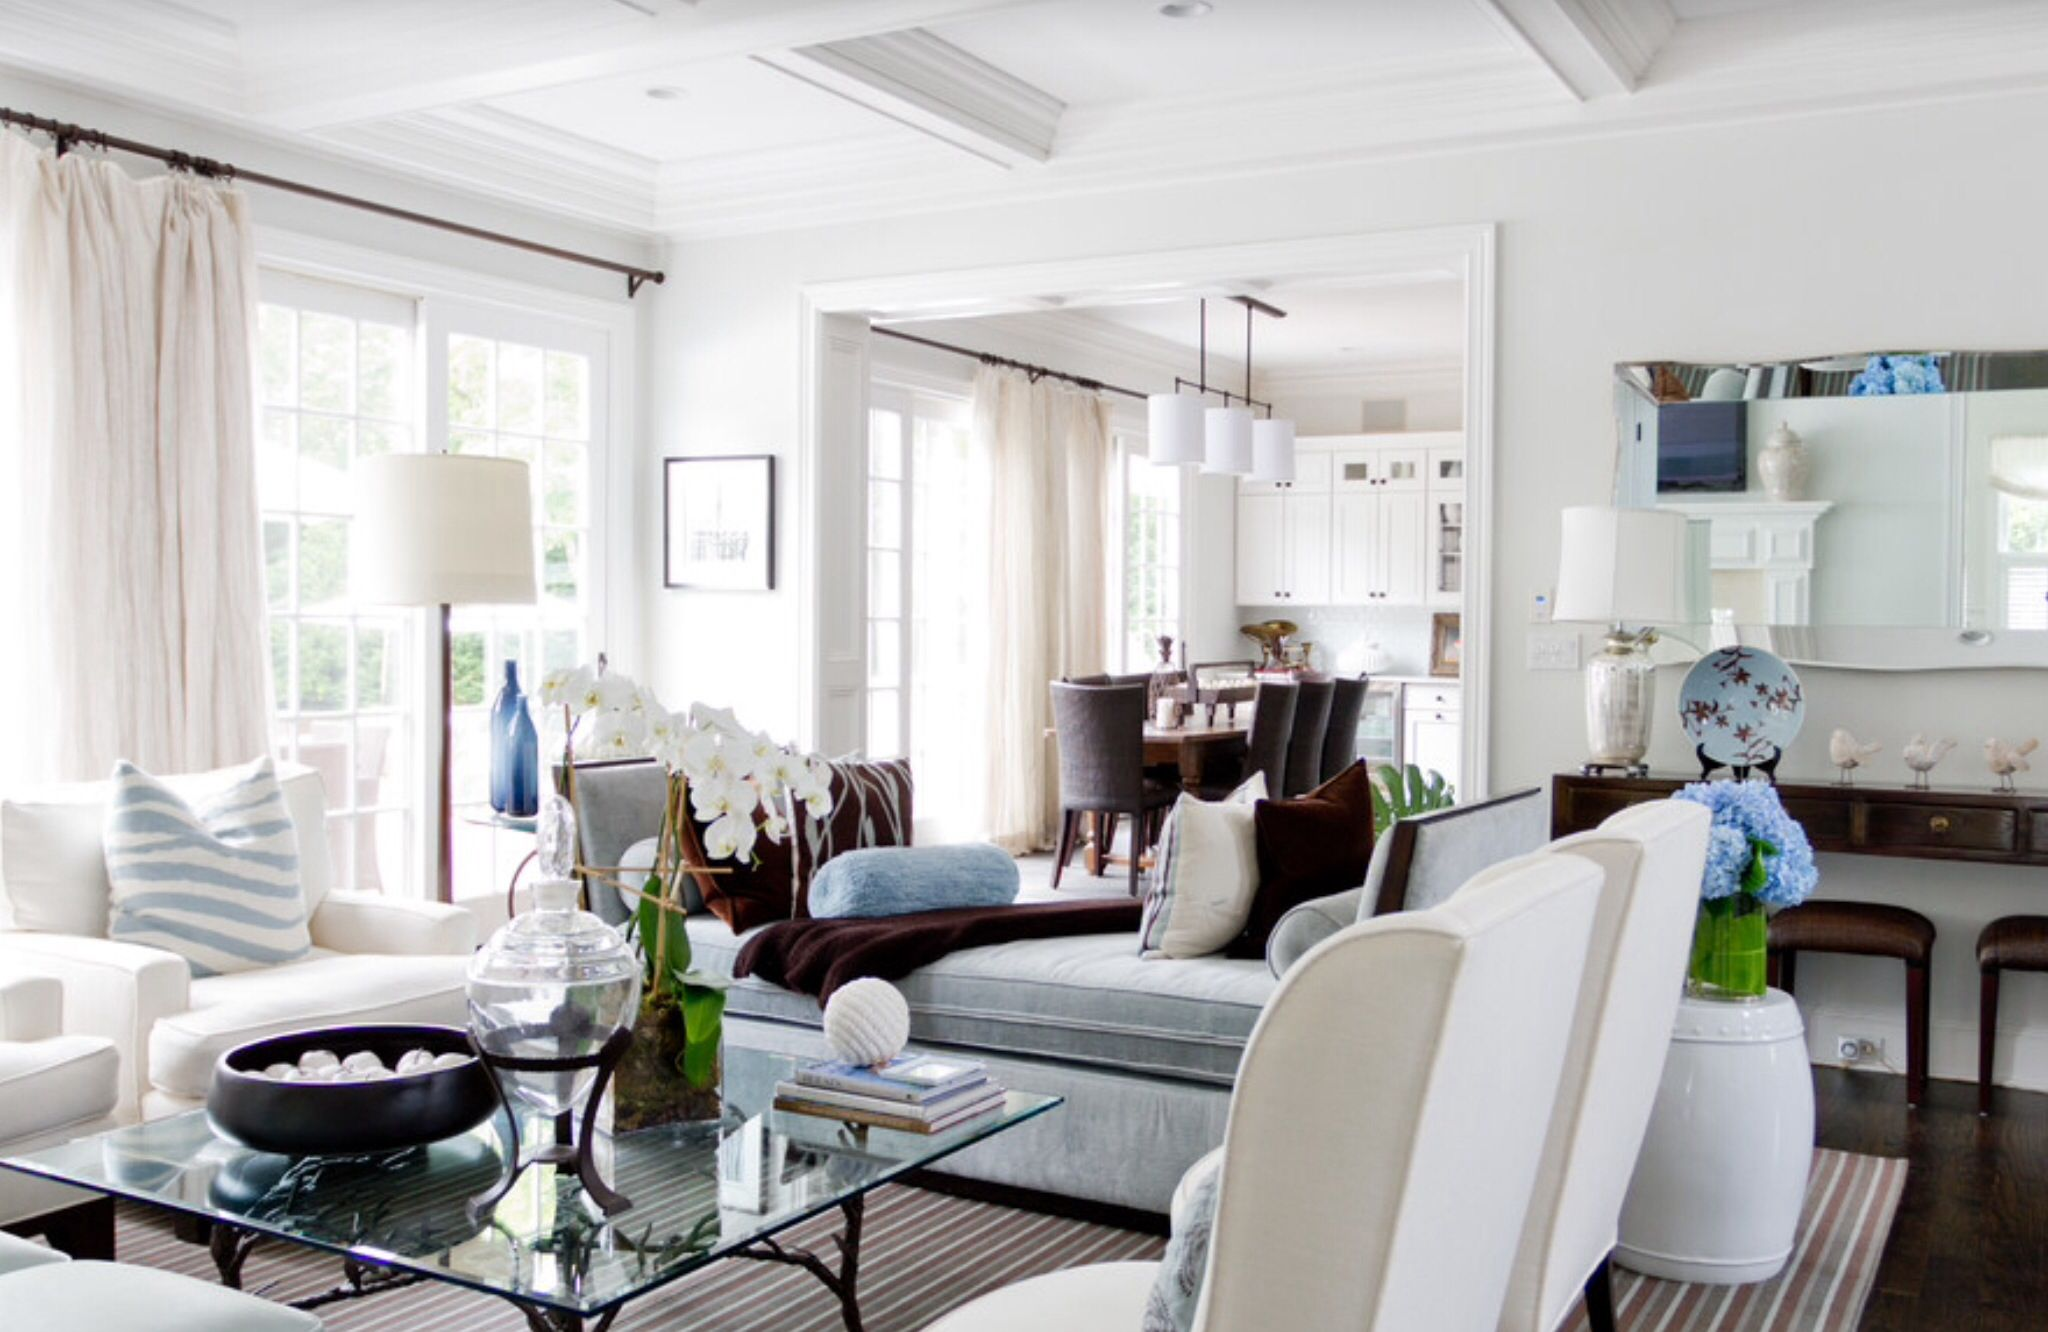 Living Room Design Houzz Magnificent By Houzz  Salones  Pinterest  Houzz Design Inspiration